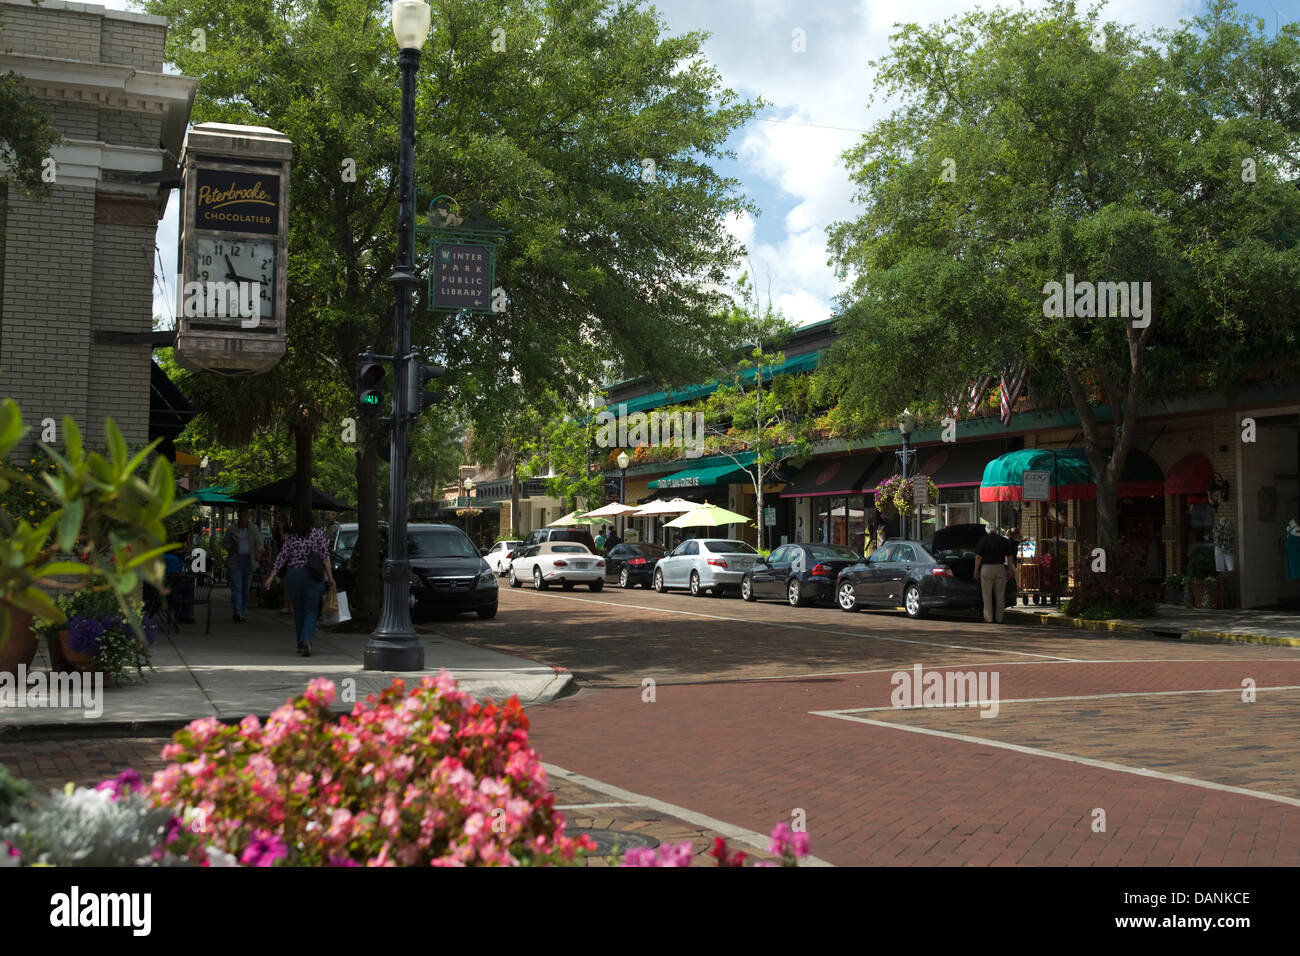 South Park Avenue Winter Park Orlando Florida Usa Stock Photo Royalty Free Image 58253902 Alamy